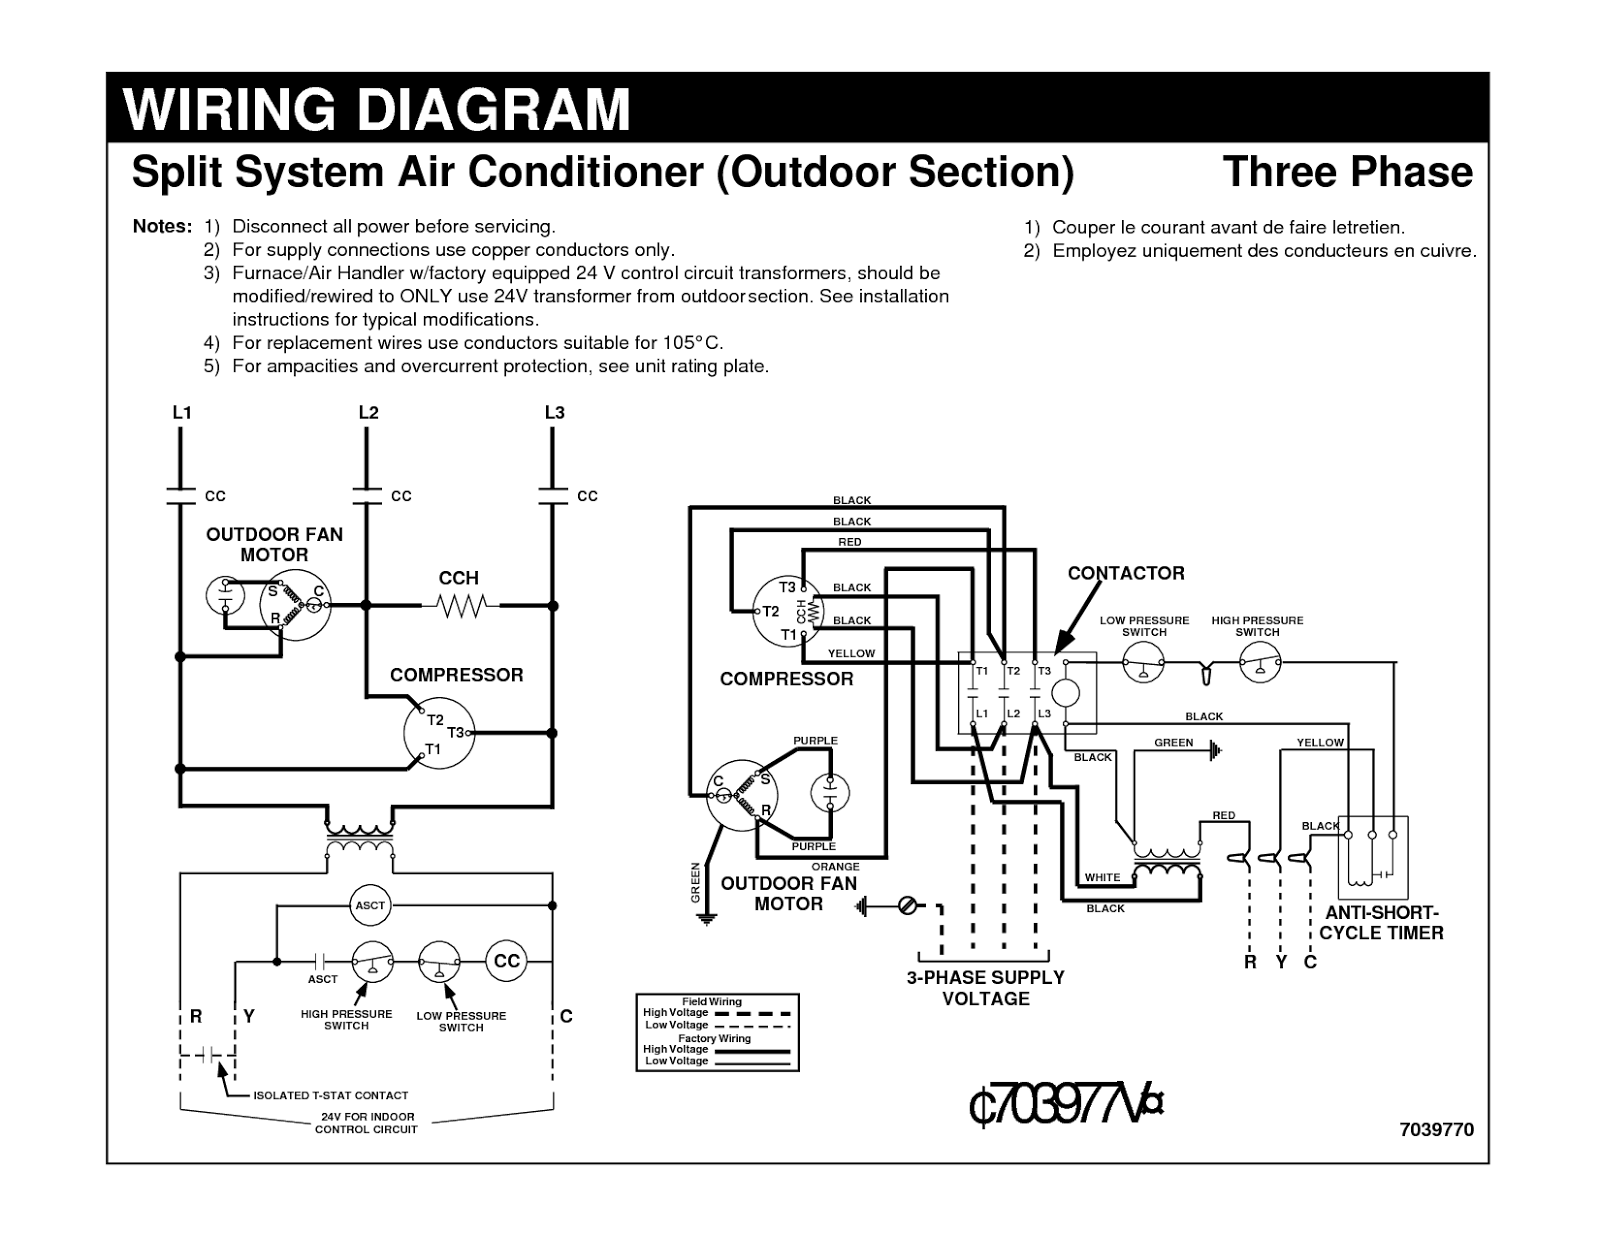 Split System Wiring Diagram Simple as well Dometic Wiring Diagram moreover Suburban Water Heater Model Sw12del Tune Up Kit furthermore Index php also Trane Wiring Diagrams On Air Handler Diagram And   With For Conditioner. on rv furnace thermostat wiring